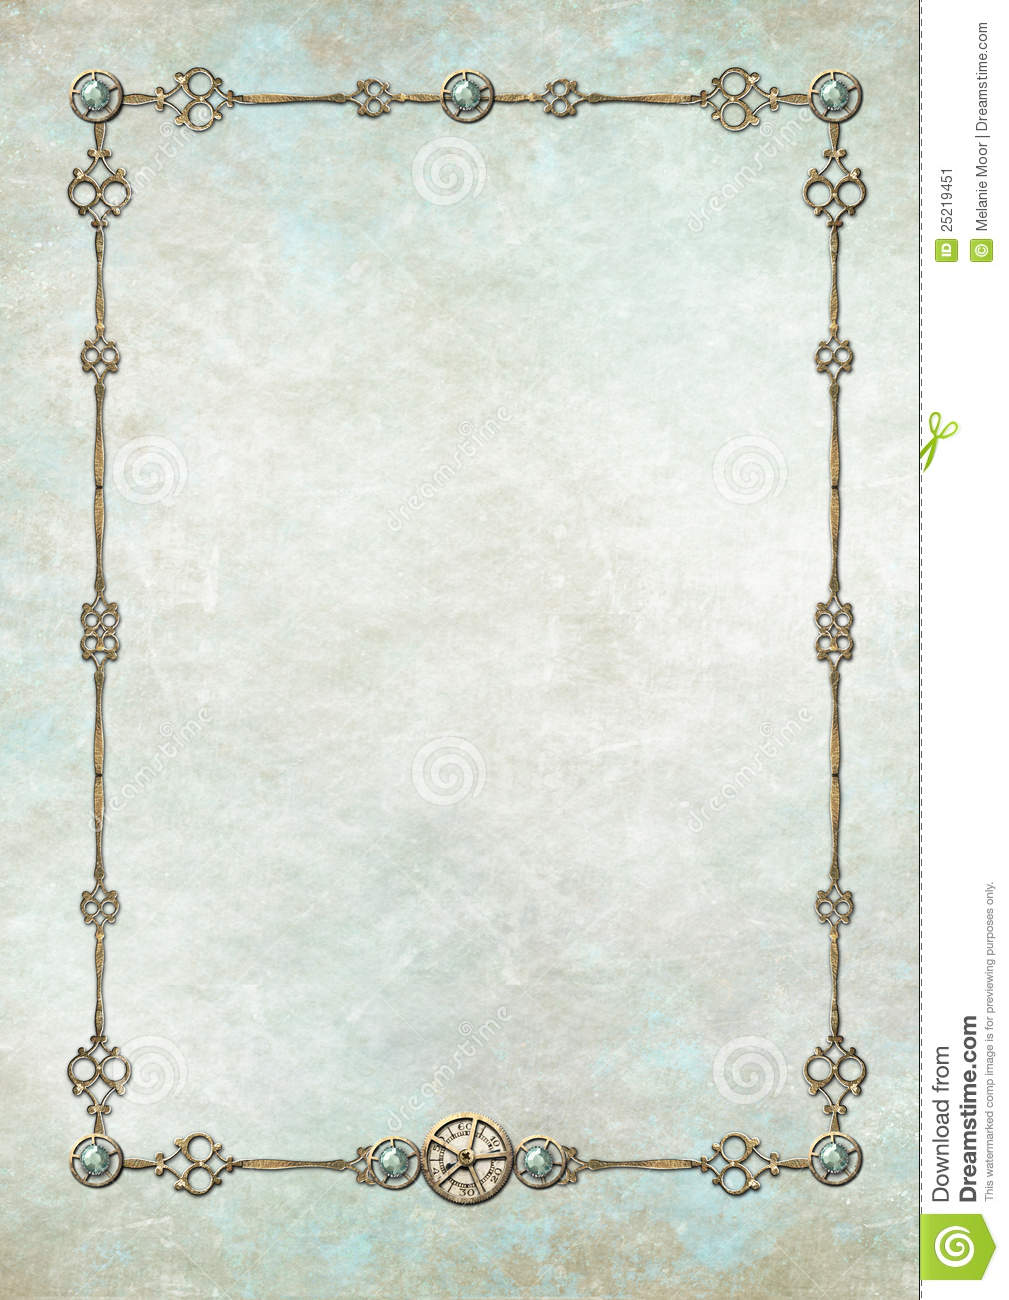 Steampunk Frame With Gemstones Stock Illustration ...